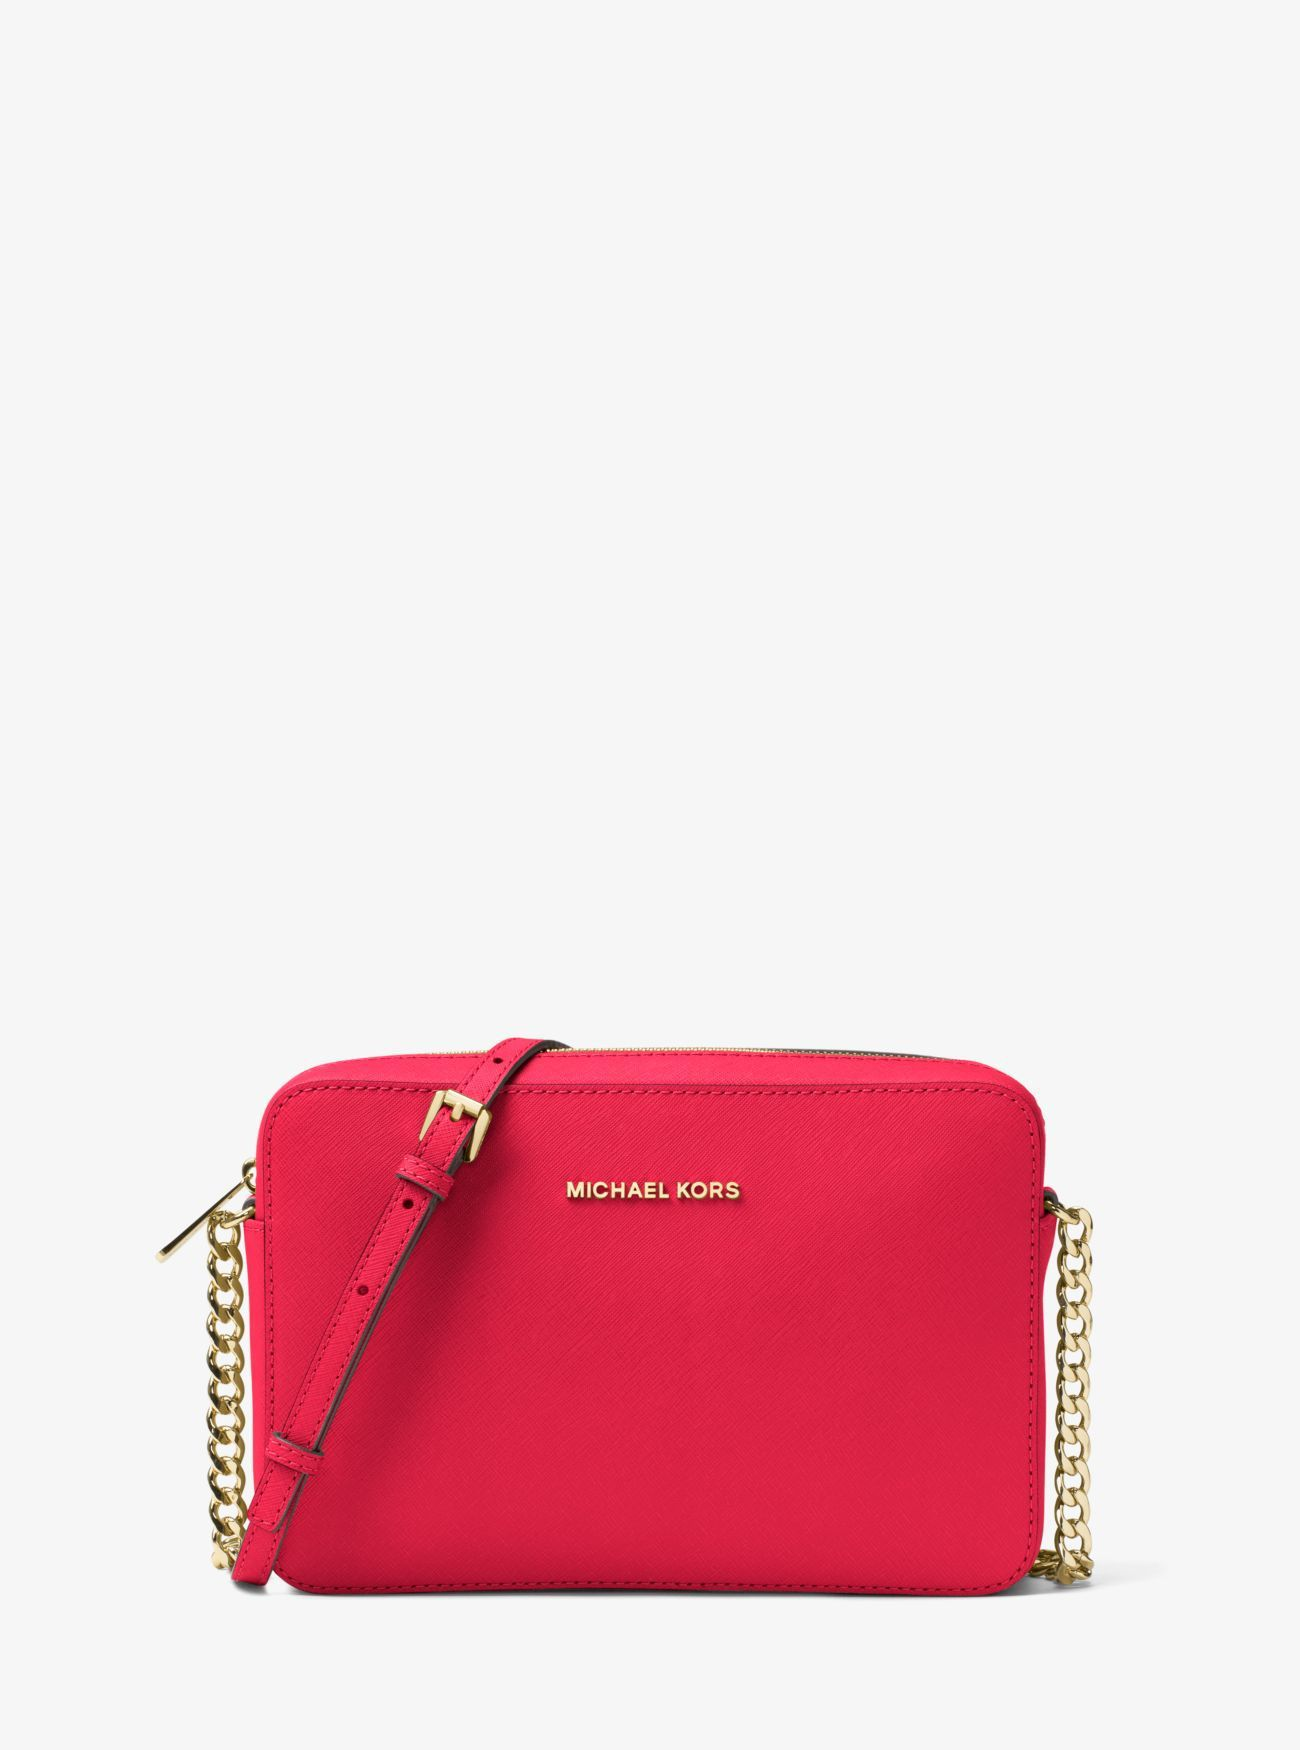 37ba74eff5f65 Michael Kors Handbags Are on Up to 75% Off for a Labor Day Sale